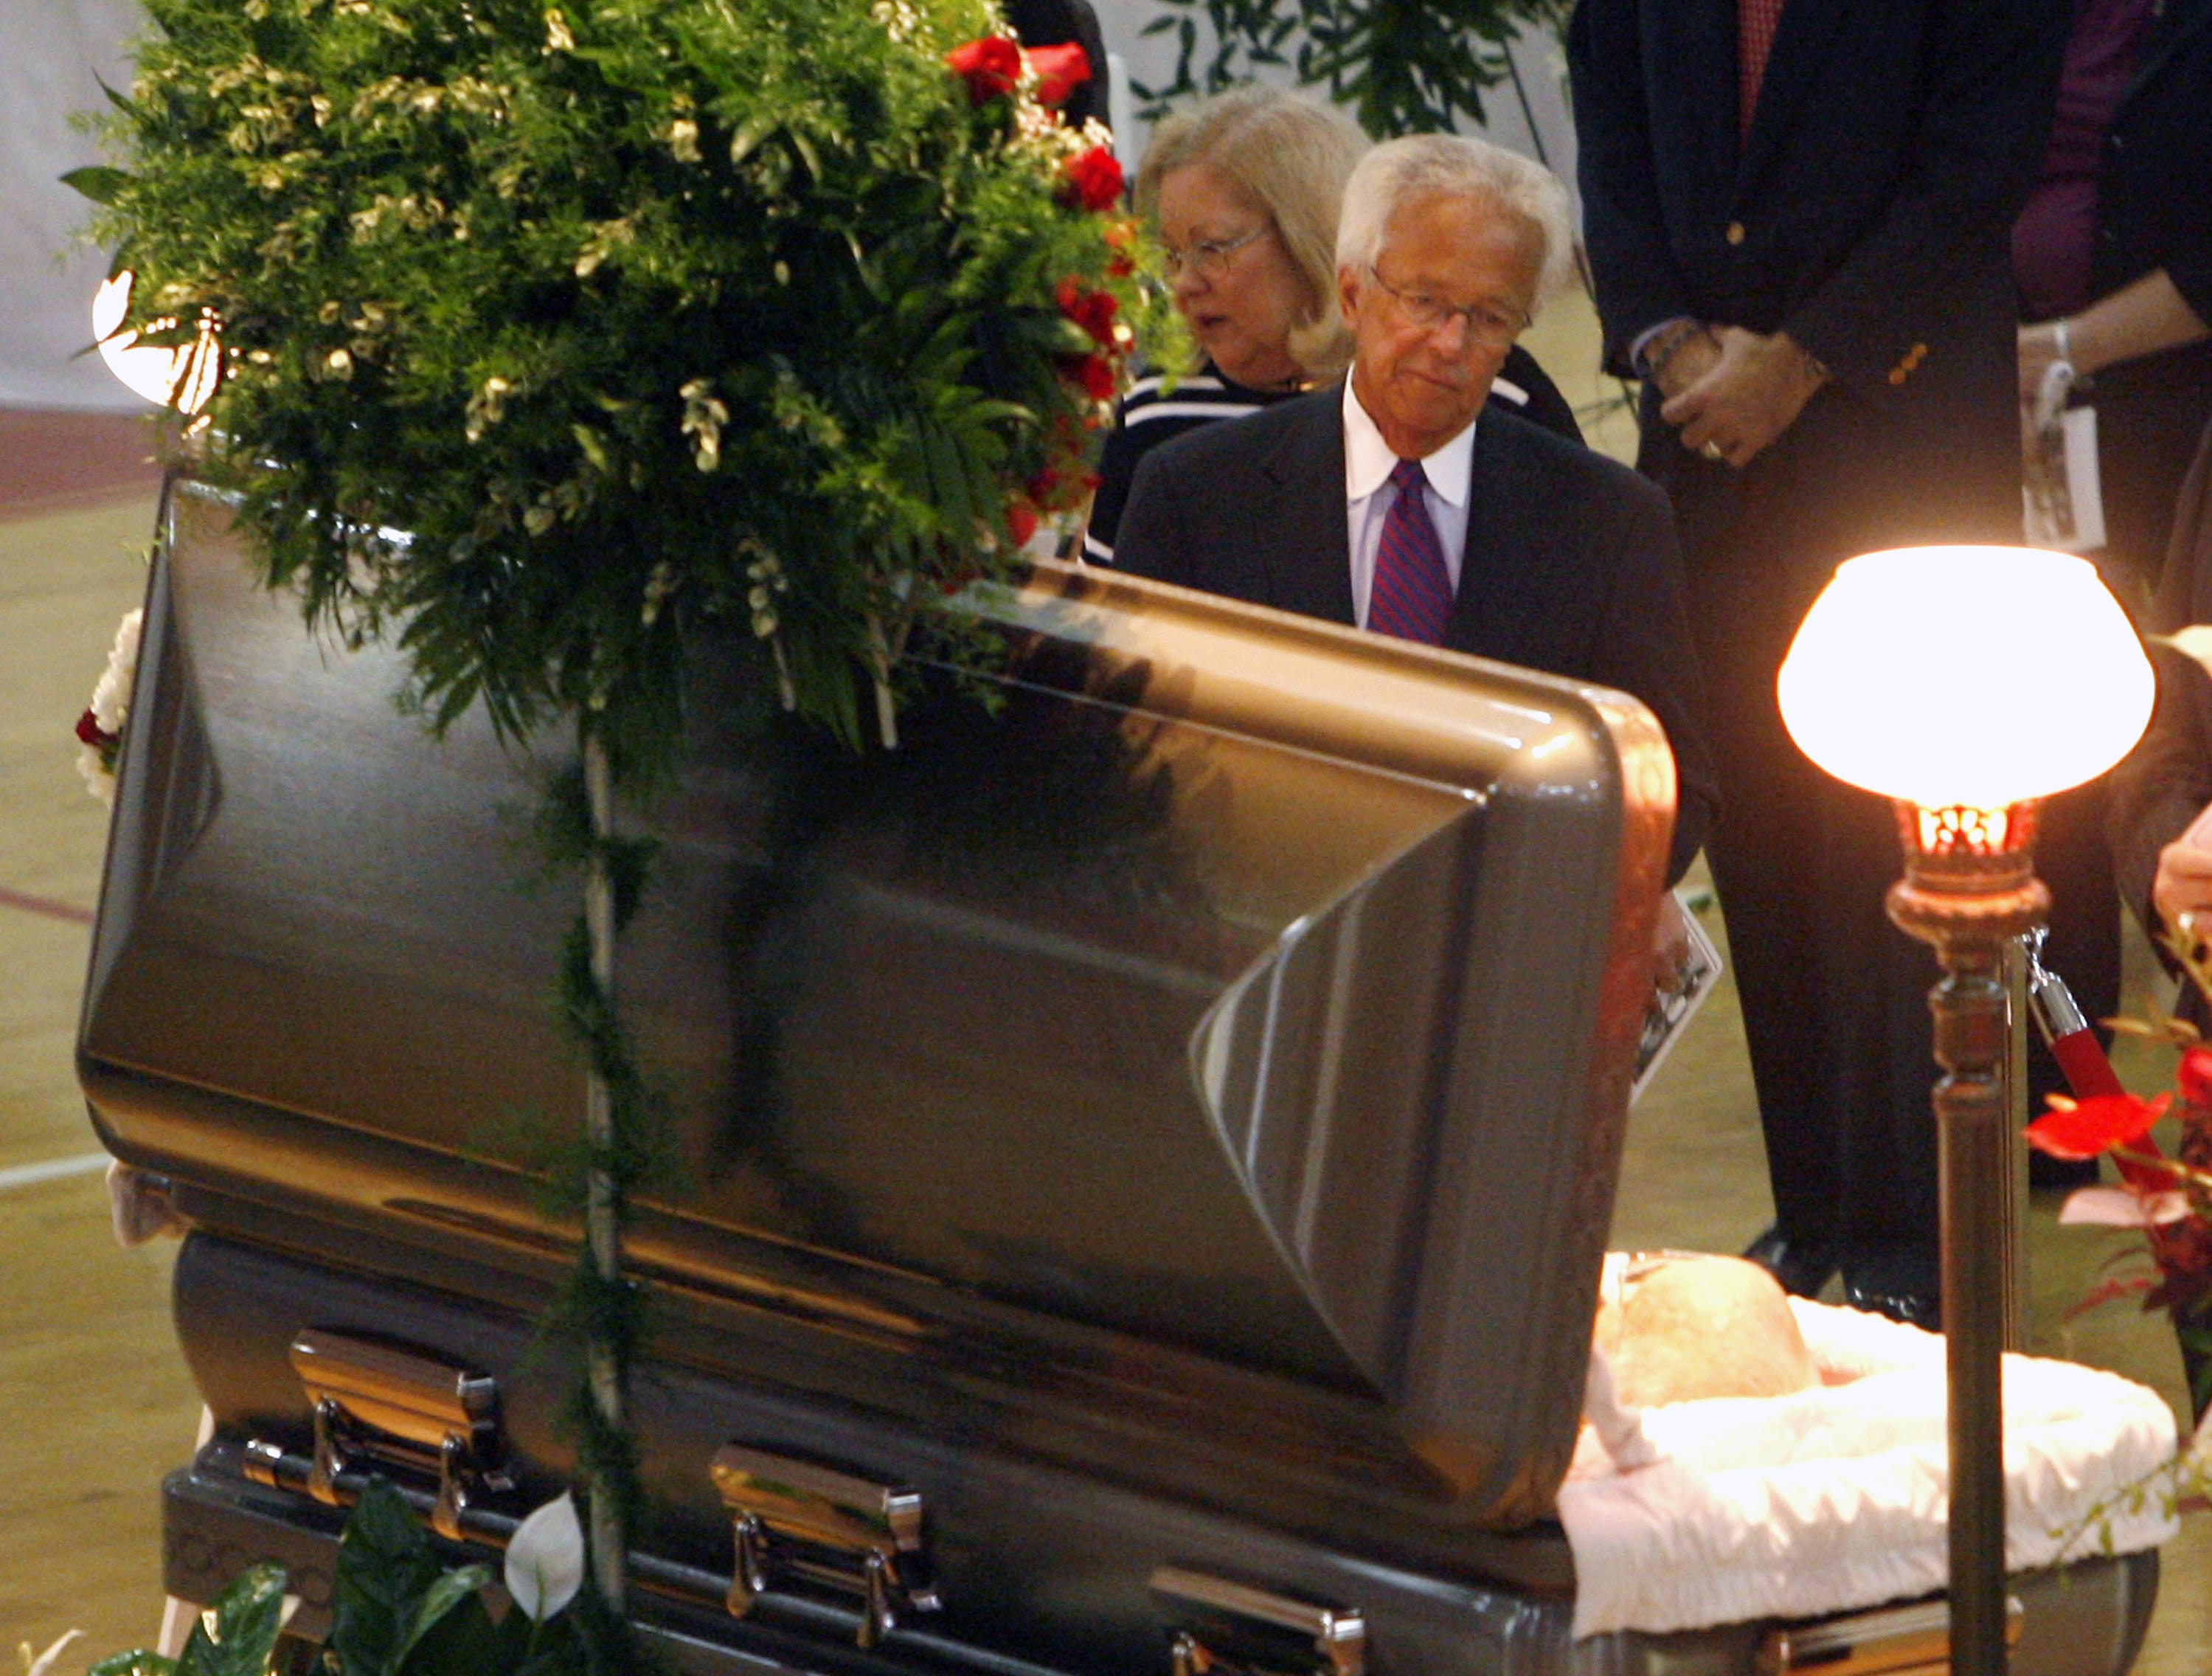 Cincinnati Reds broadcaster Marty Brennaman and his wife, Sheri, take a moment at the casket of his longtime baseball broadcast partner Joe Nuxhall during a visitation at Fairfield High School on Tuesday, Nov. 20, 2007, in Fairfield, Ohio.